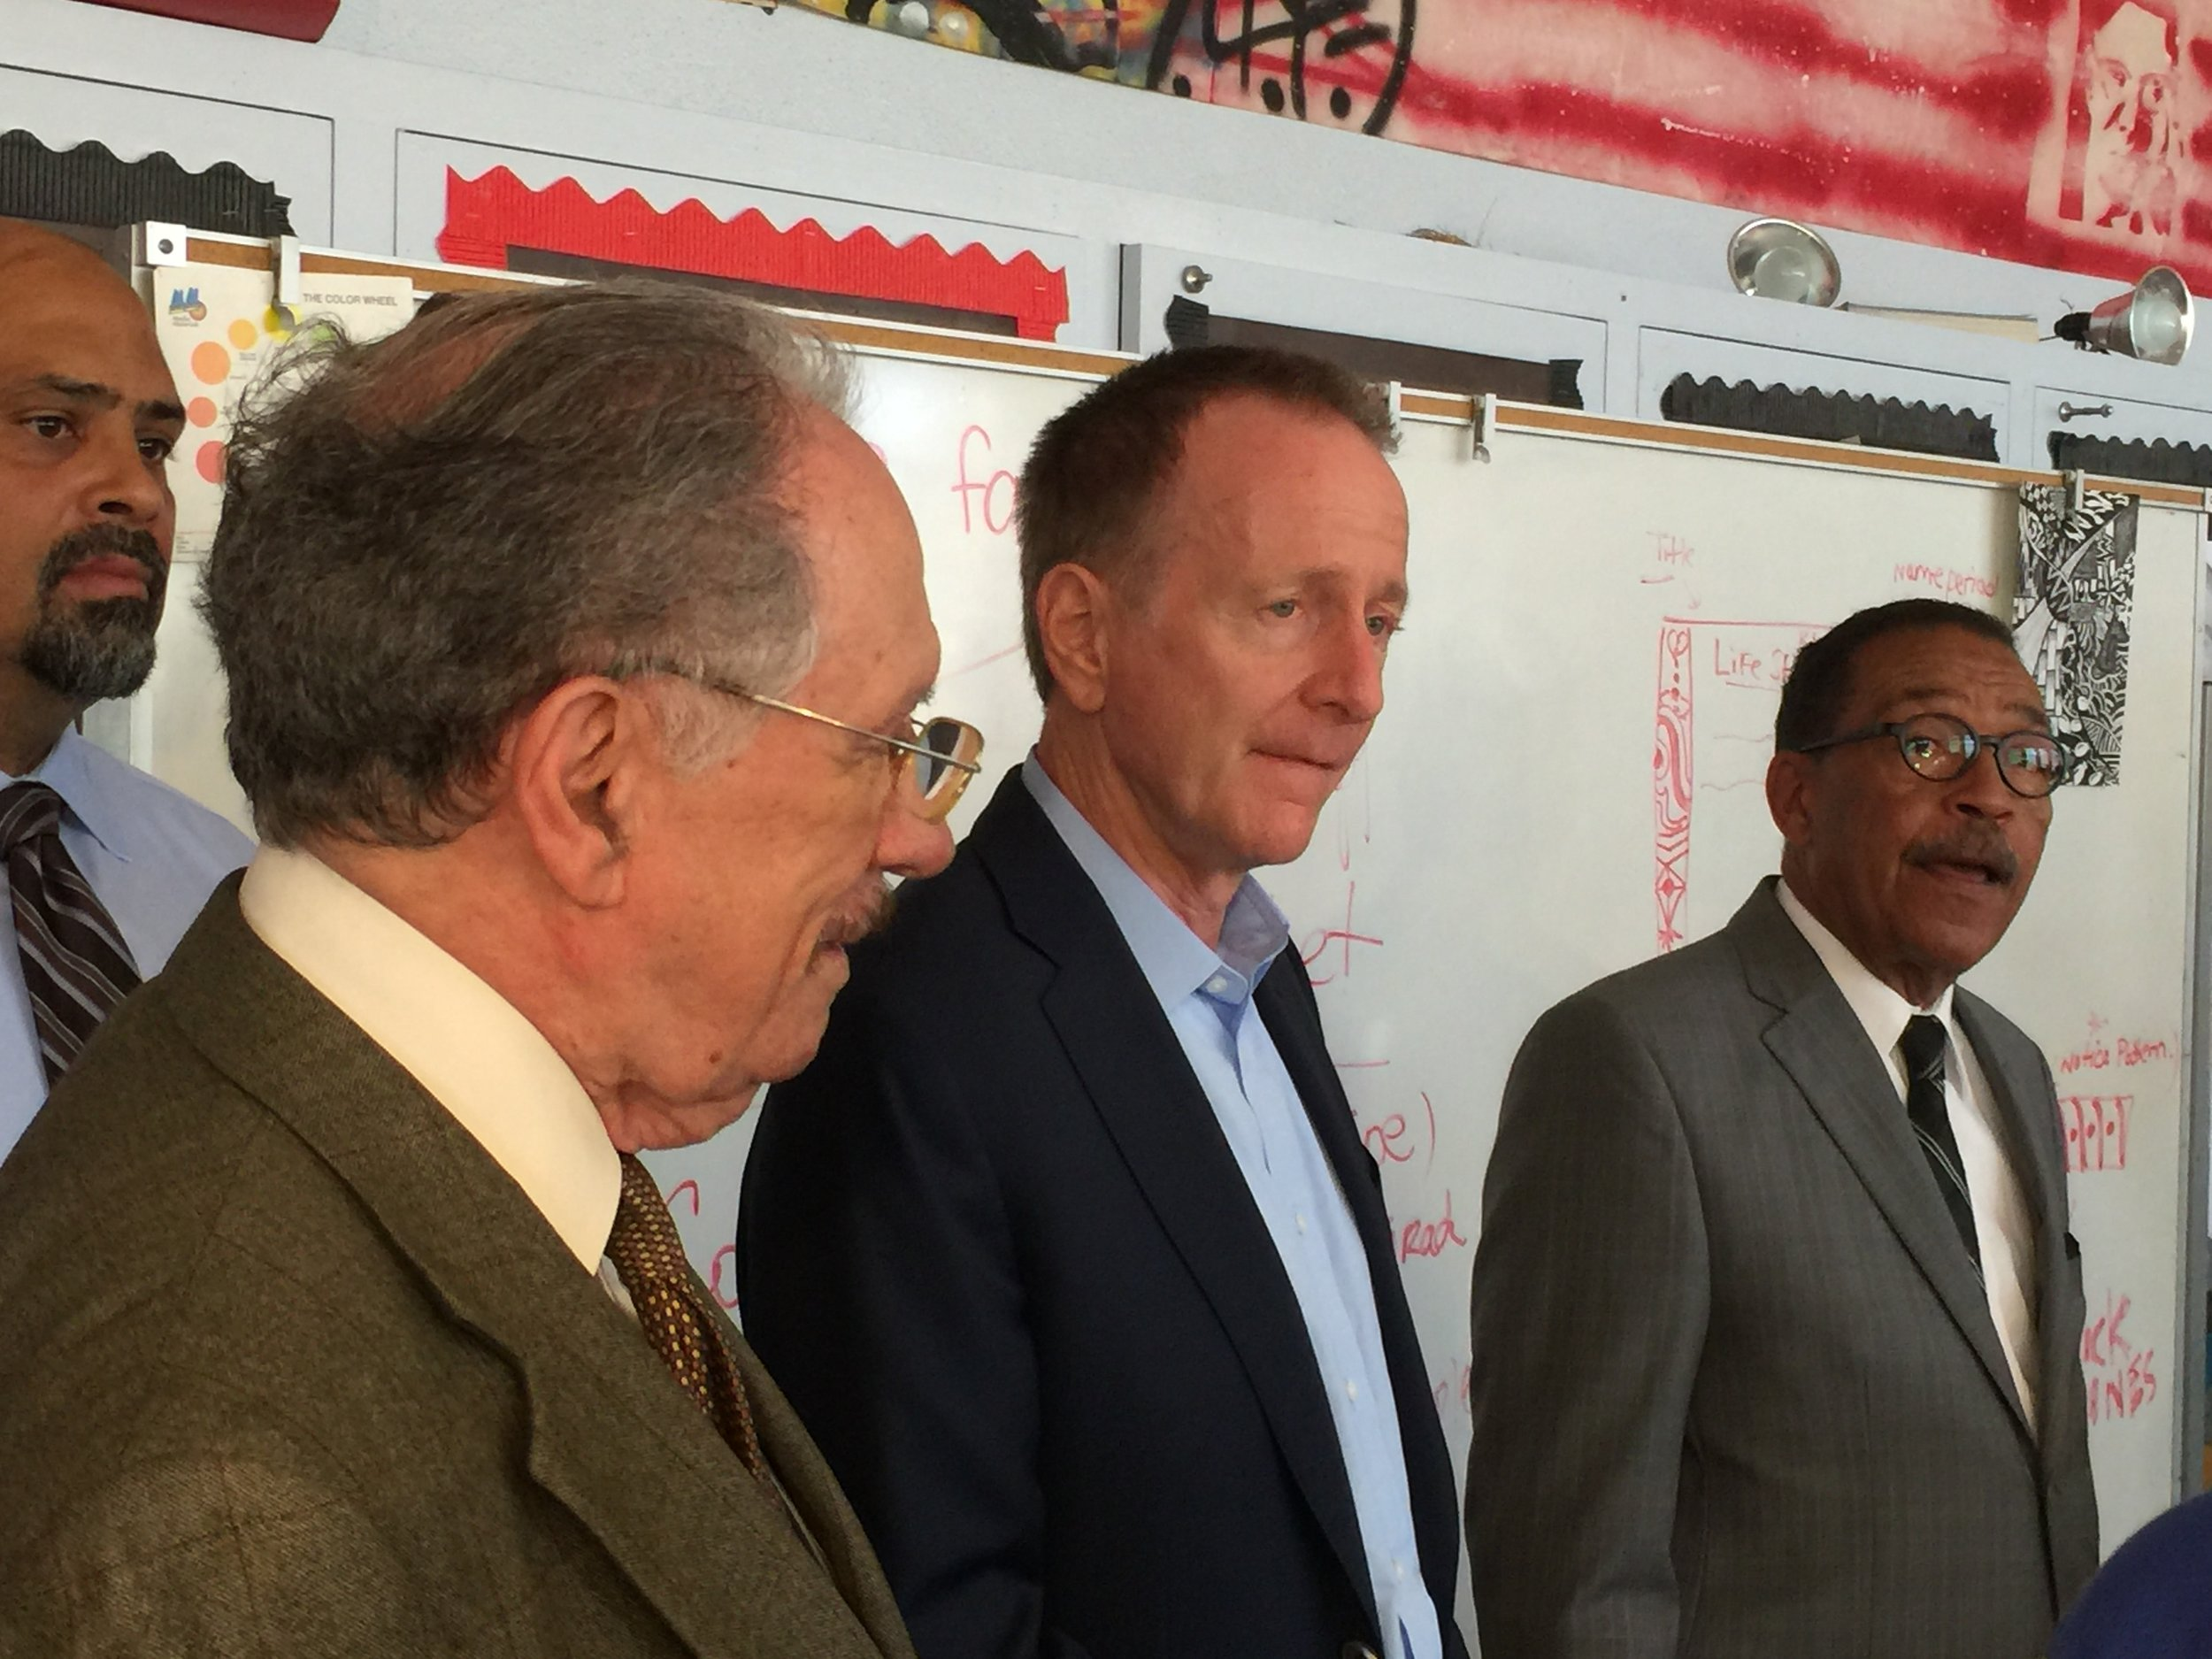 Superintendent Austin Beutner (center) joins Board Member George McKenna (left) and City Council President Herb Wesson in an art class at Crenshaw High the first day of school.